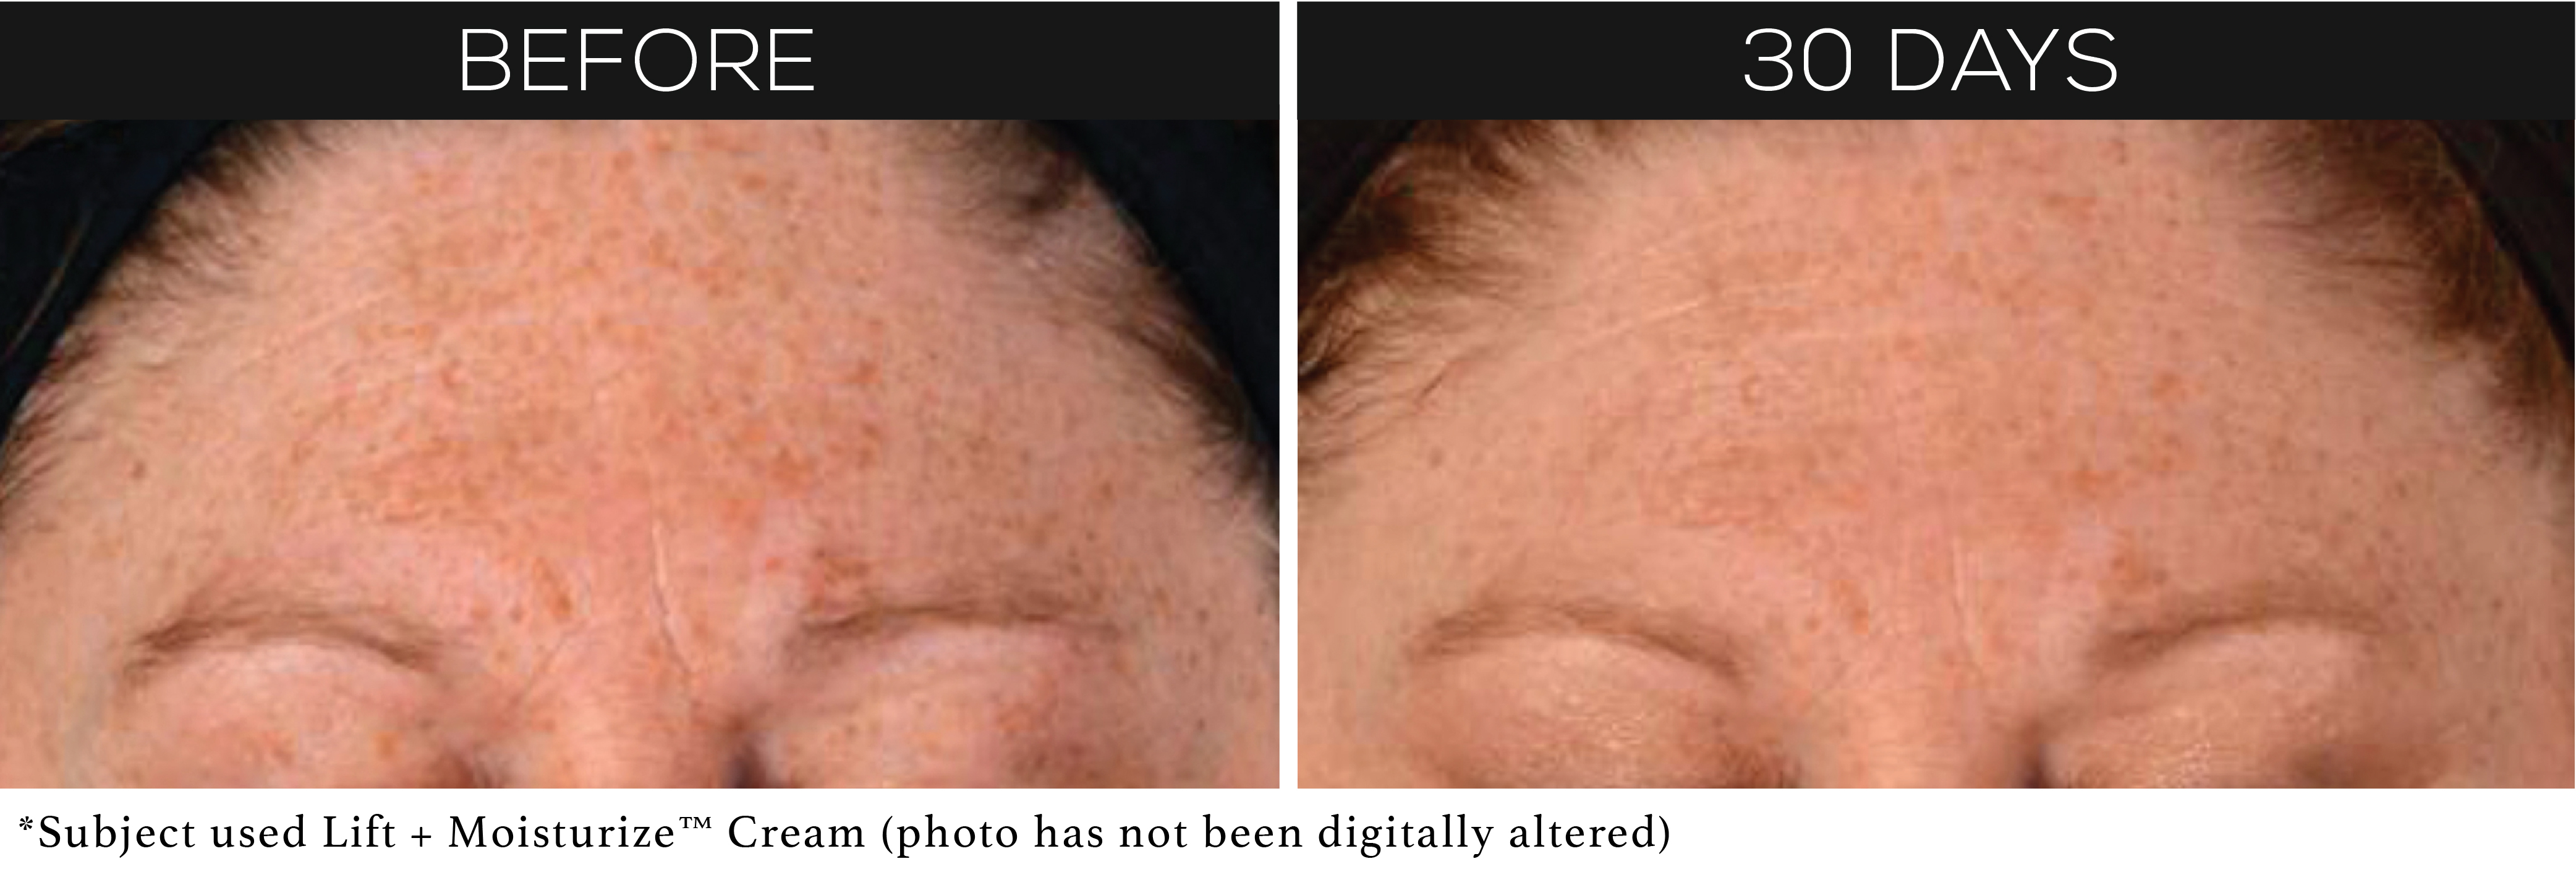 before-after-lift-moisturize2.jpg